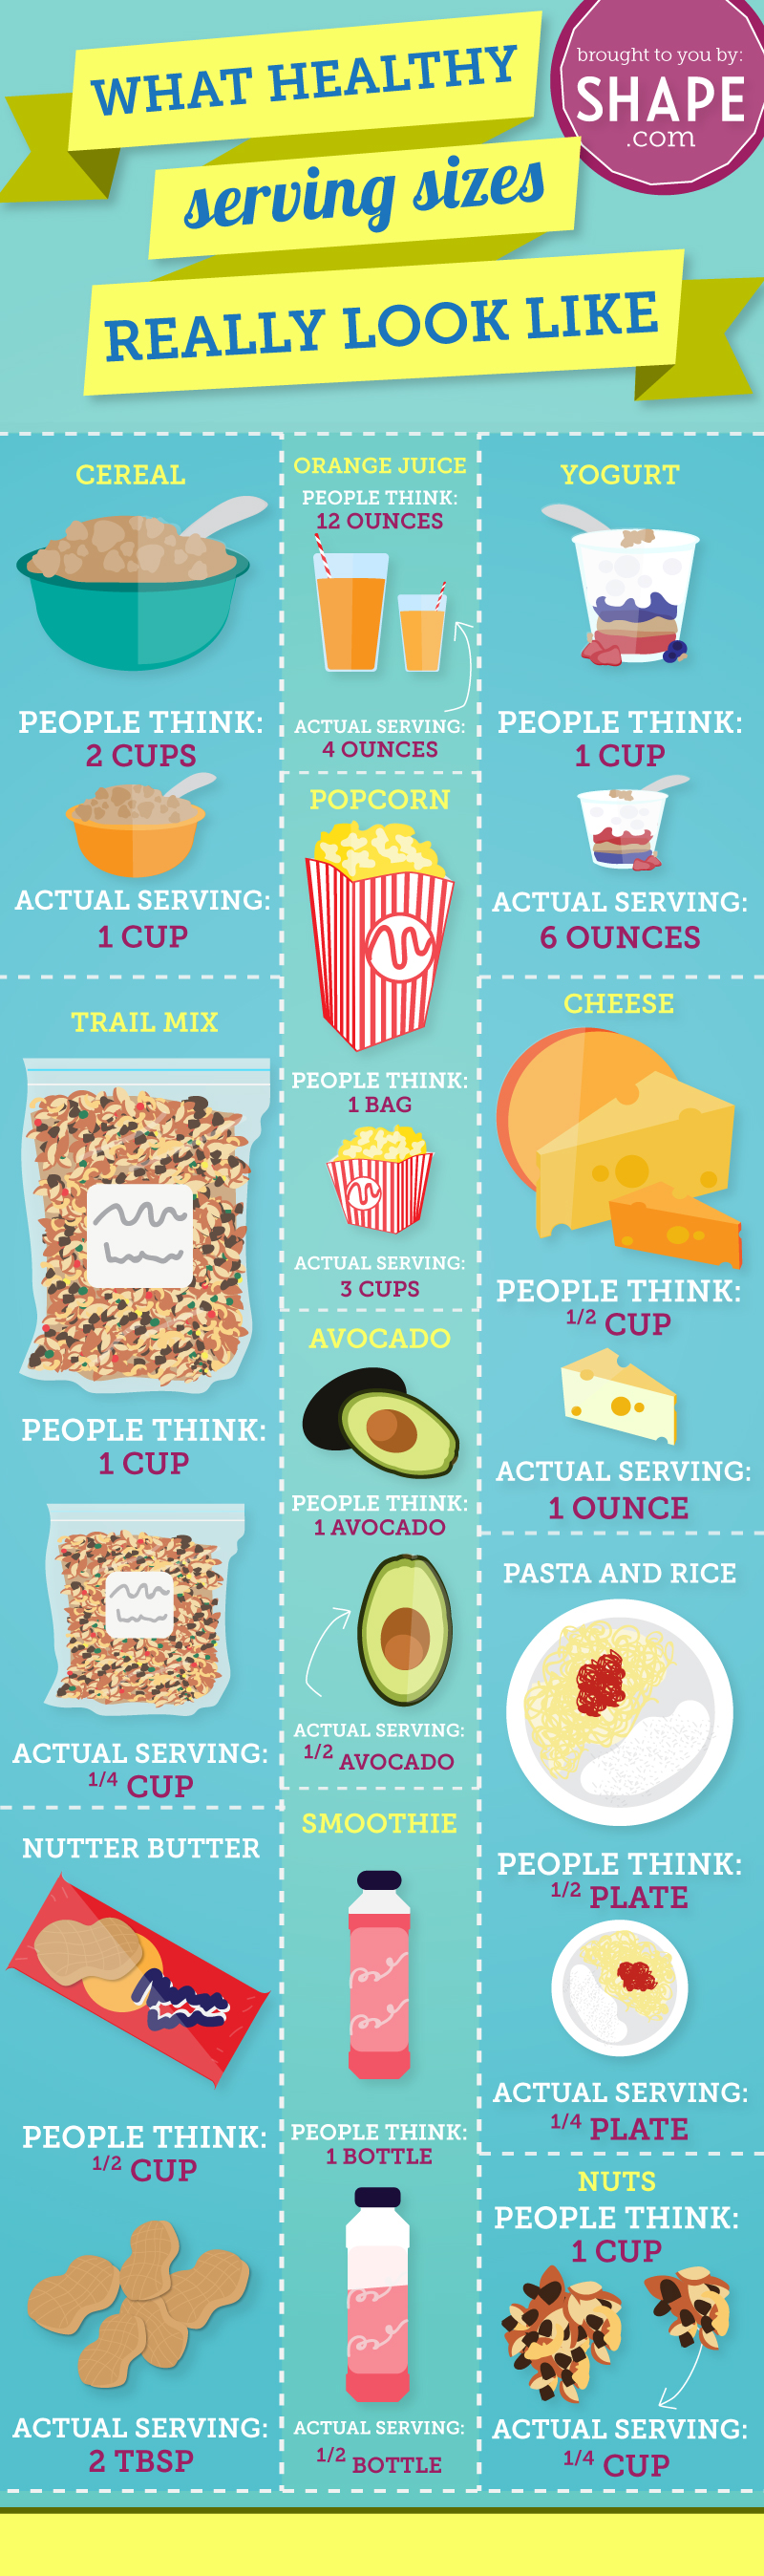 Why Serving Sizes are Important Even in Healthy Foods - Infographic